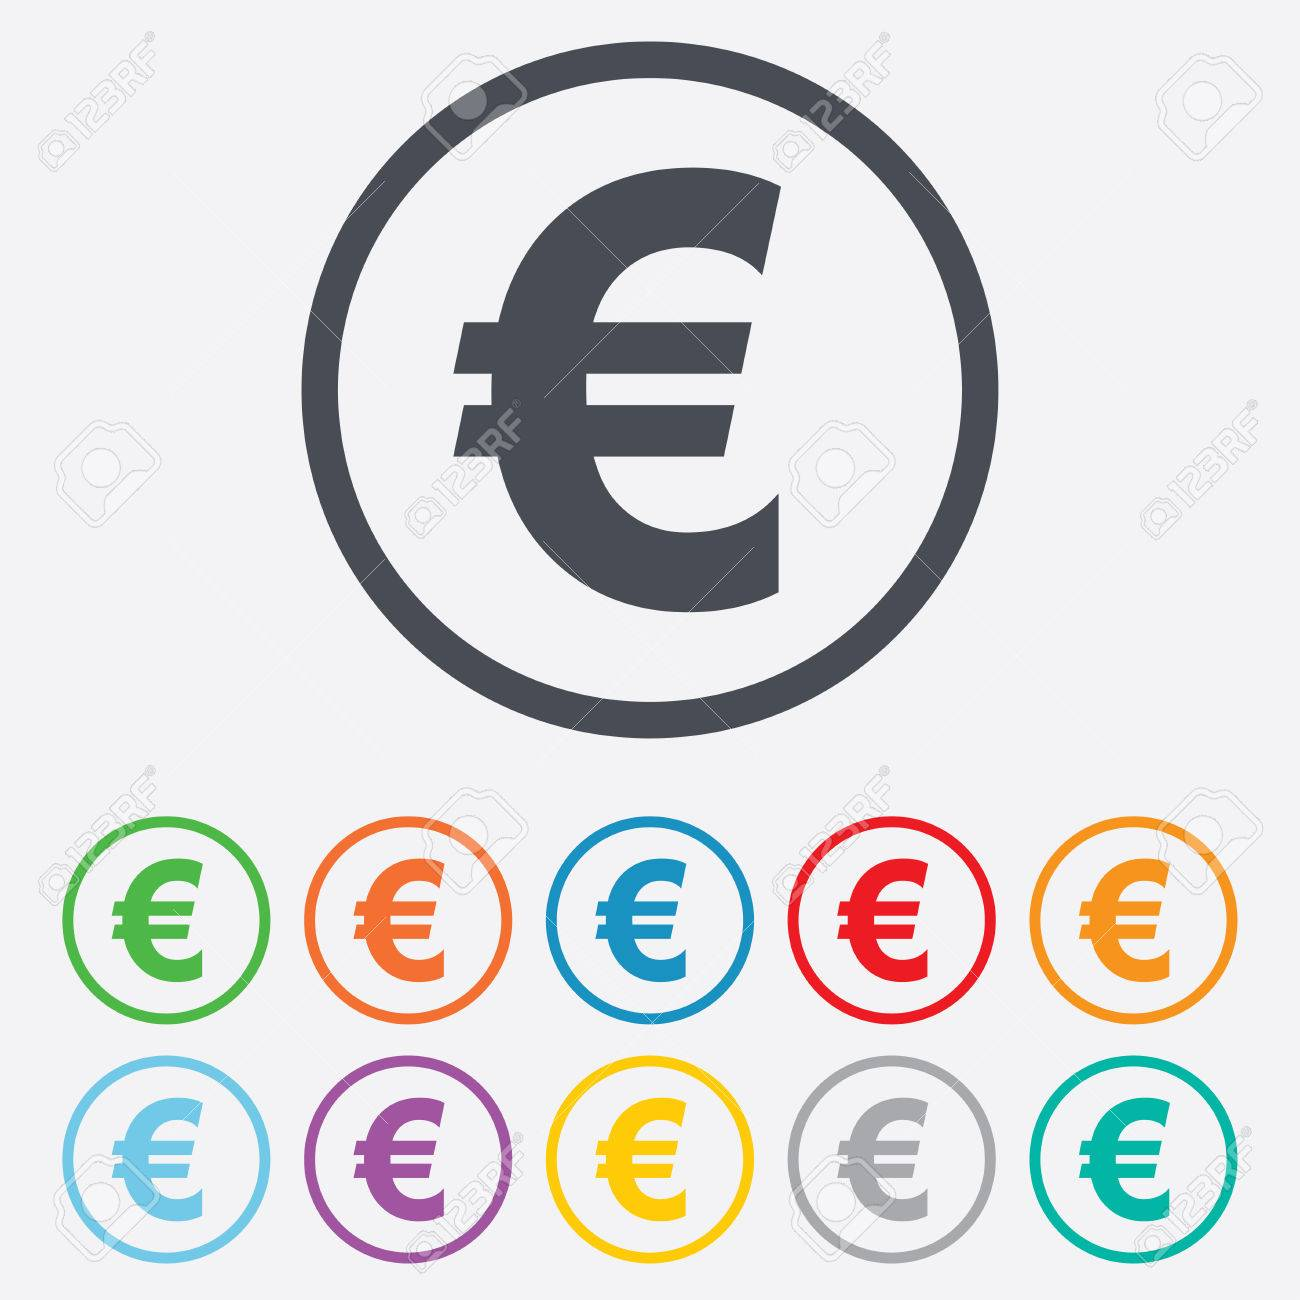 Aed currency symbol gallery symbol and sign ideas currency symbol w gallery symbol and sign ideas currency symbol w images symbol and sign ideas buycottarizona